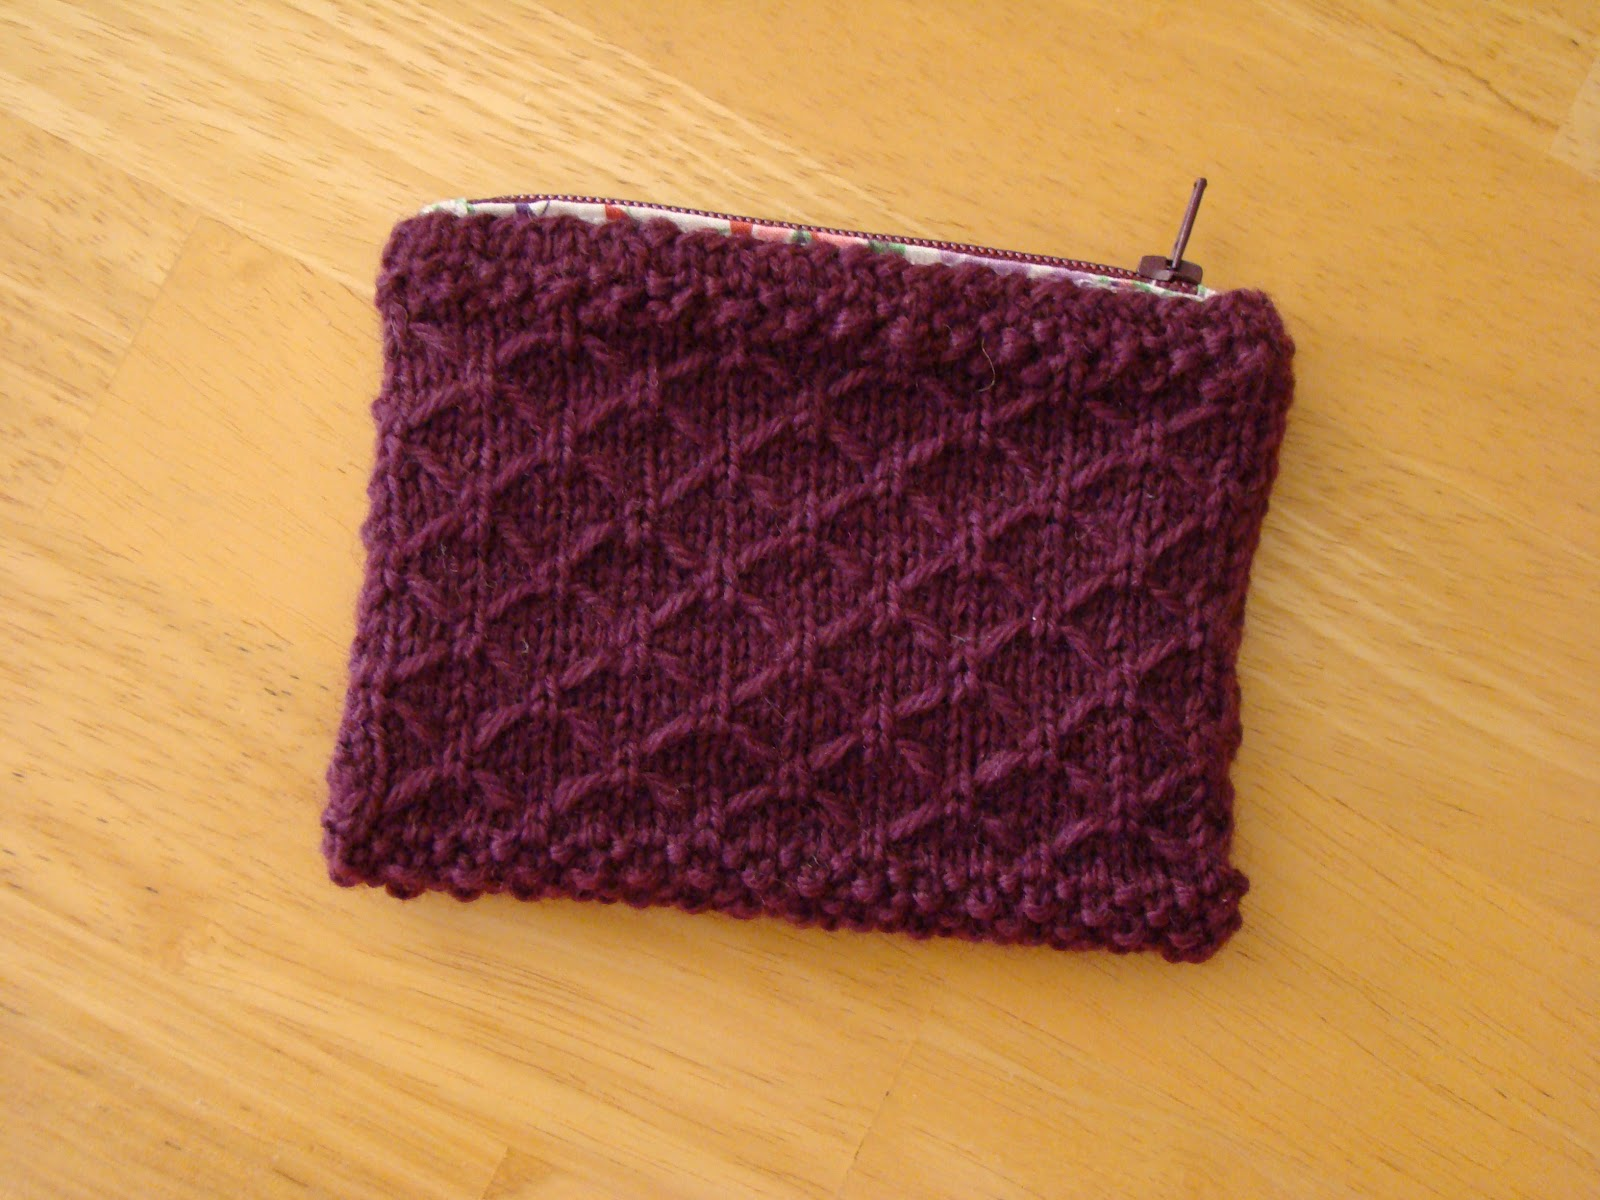 knackful knitter: A knitted coin purse for me